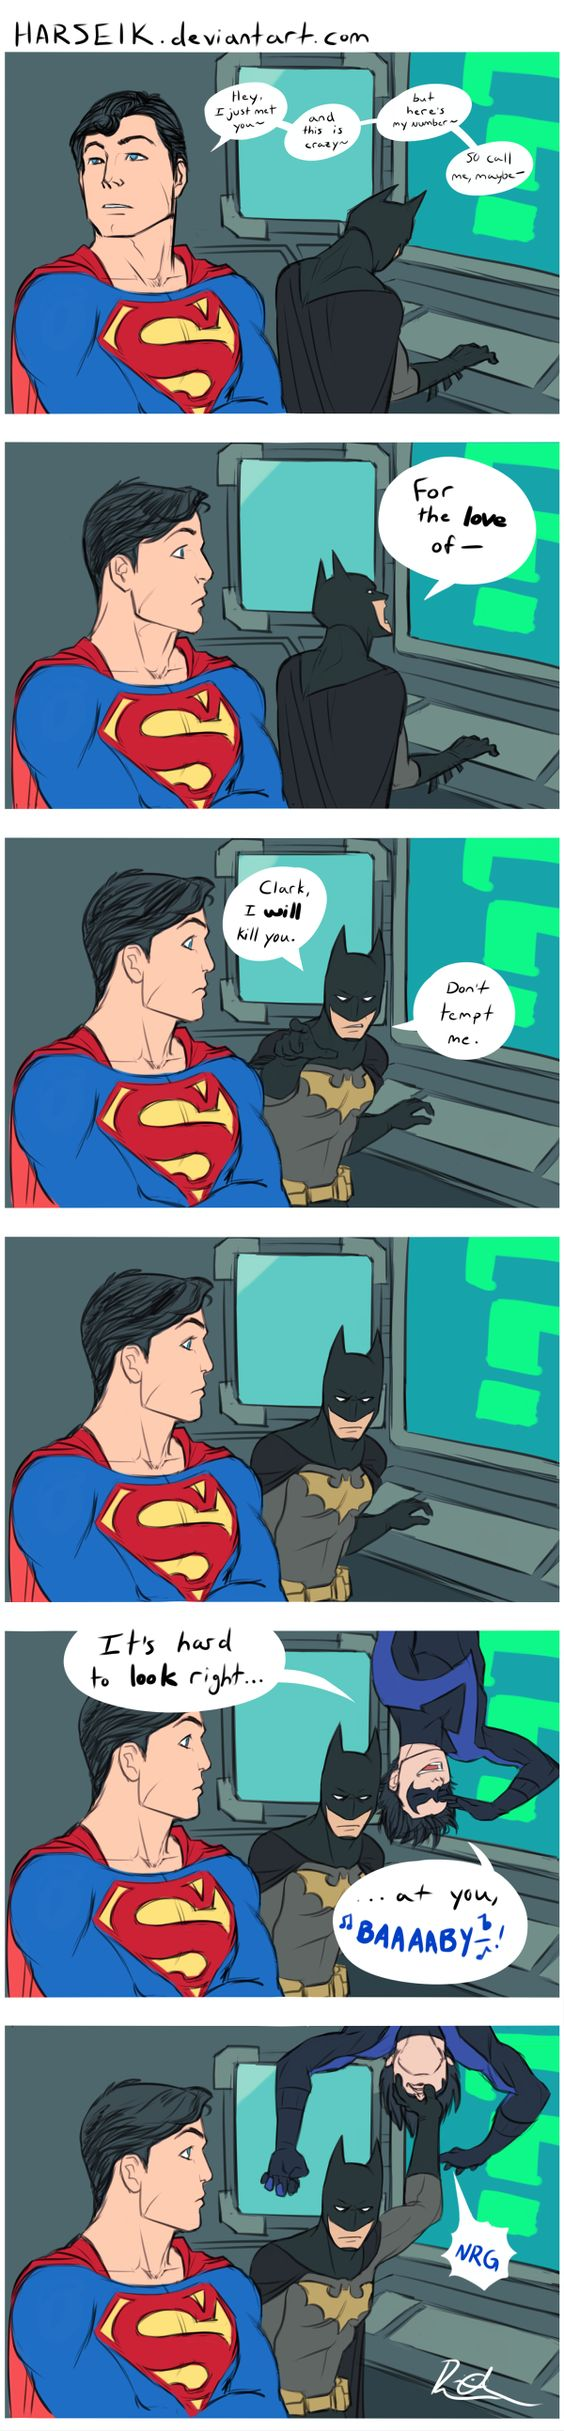 LOL Dick Grayson for the win!